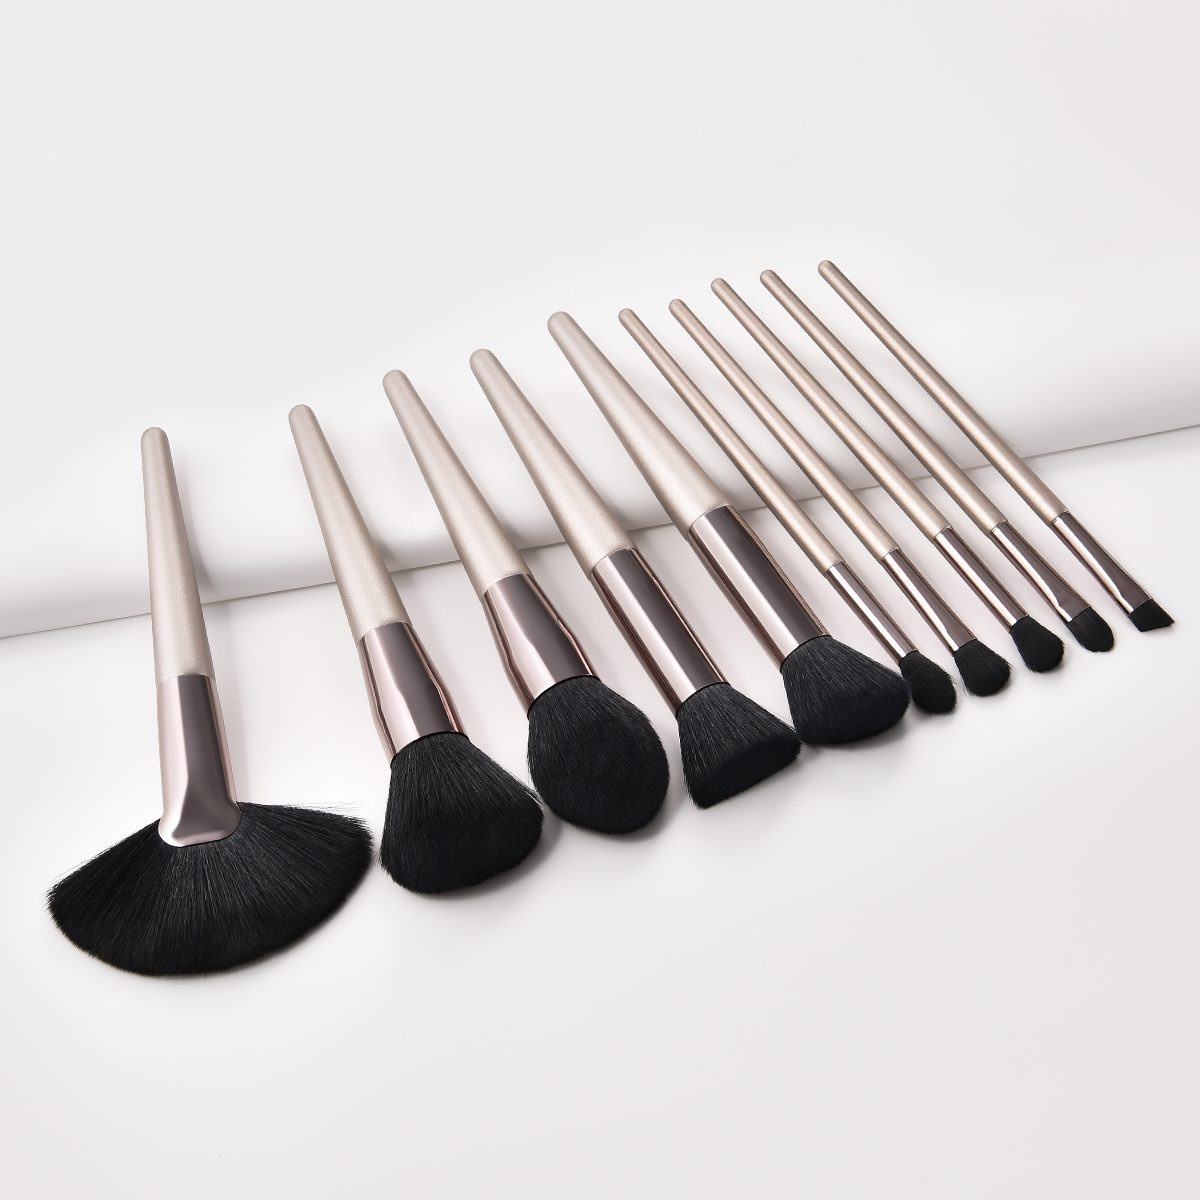 Makeup Brush Set Foundation Brush Eyeshadow Eye Powder Eyebrow Eyeliner Lip Makeup Brushes Cosmetic Beauty Tools 5pcs mermaid makeup brush set fish tail foundation powder eyeshadow blusher contour blending cosmetic brushes beauty tools kit